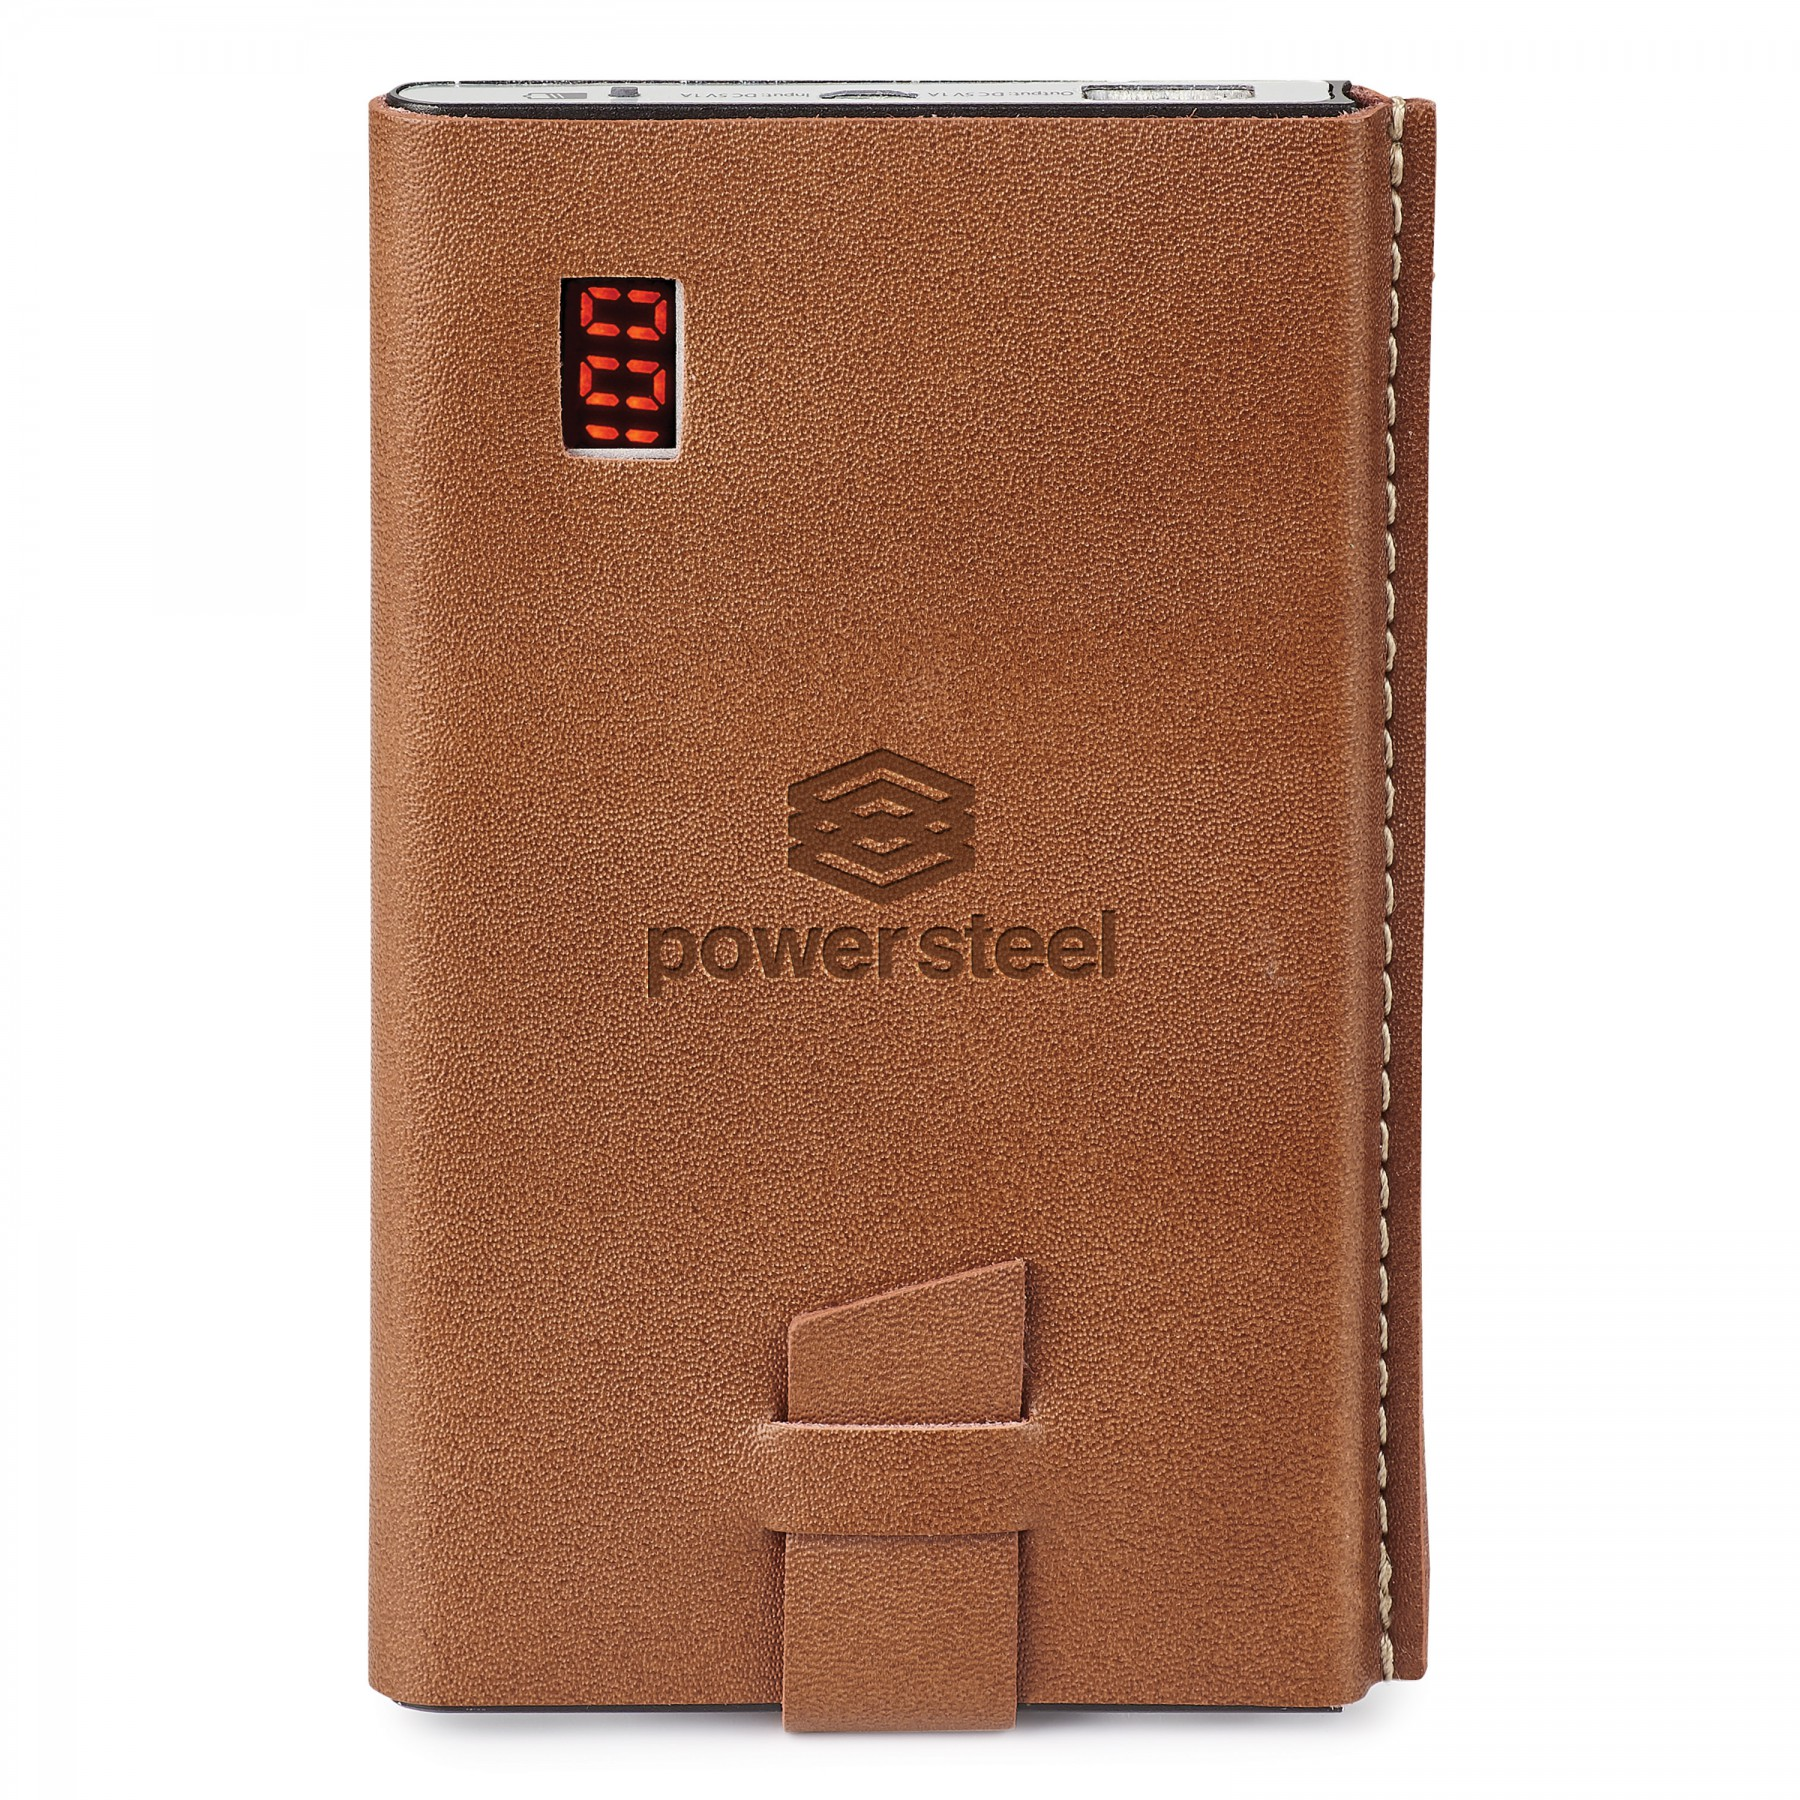 GENUINE LEATHER 4,000 mAh UL CERTIFIED POWER BANK, T9939, Debossed Logo